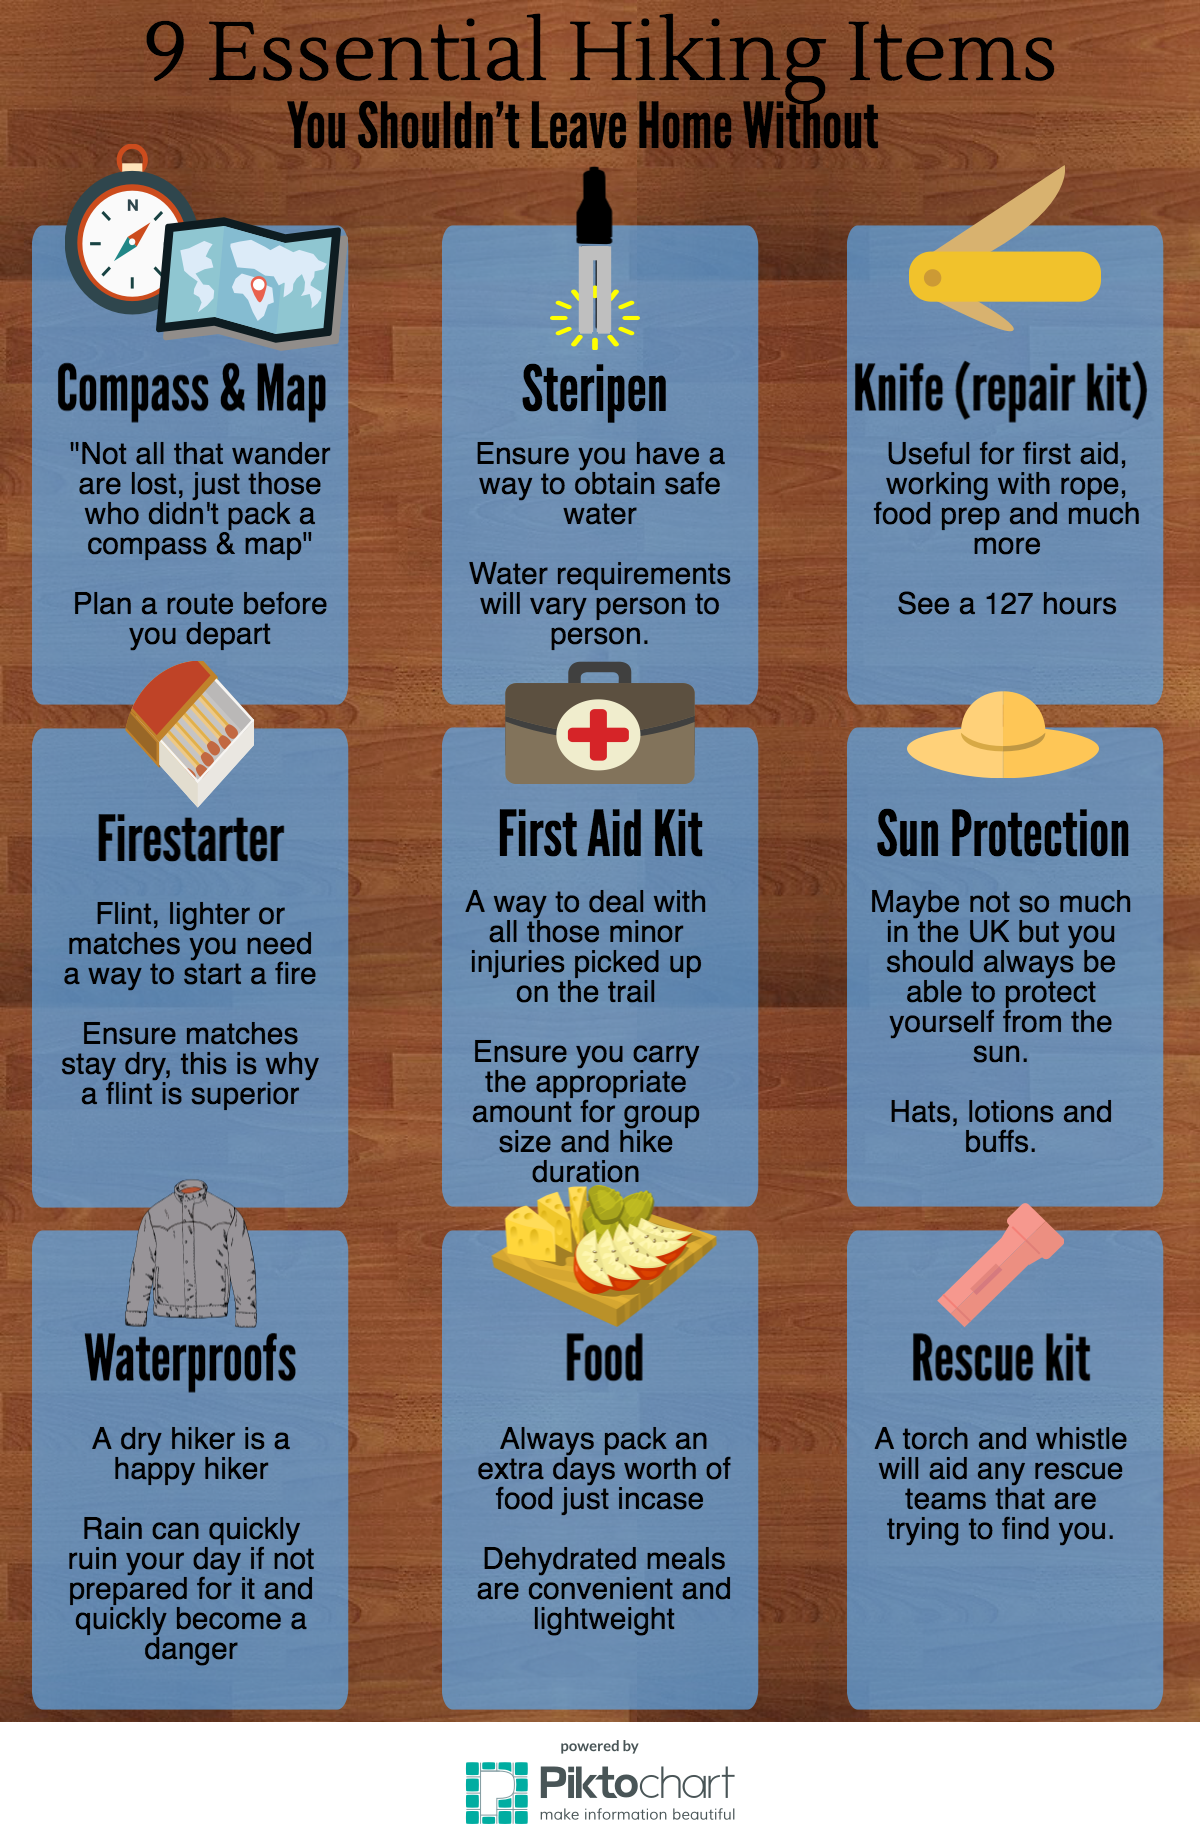 9 Essential Hiking Items Infographic